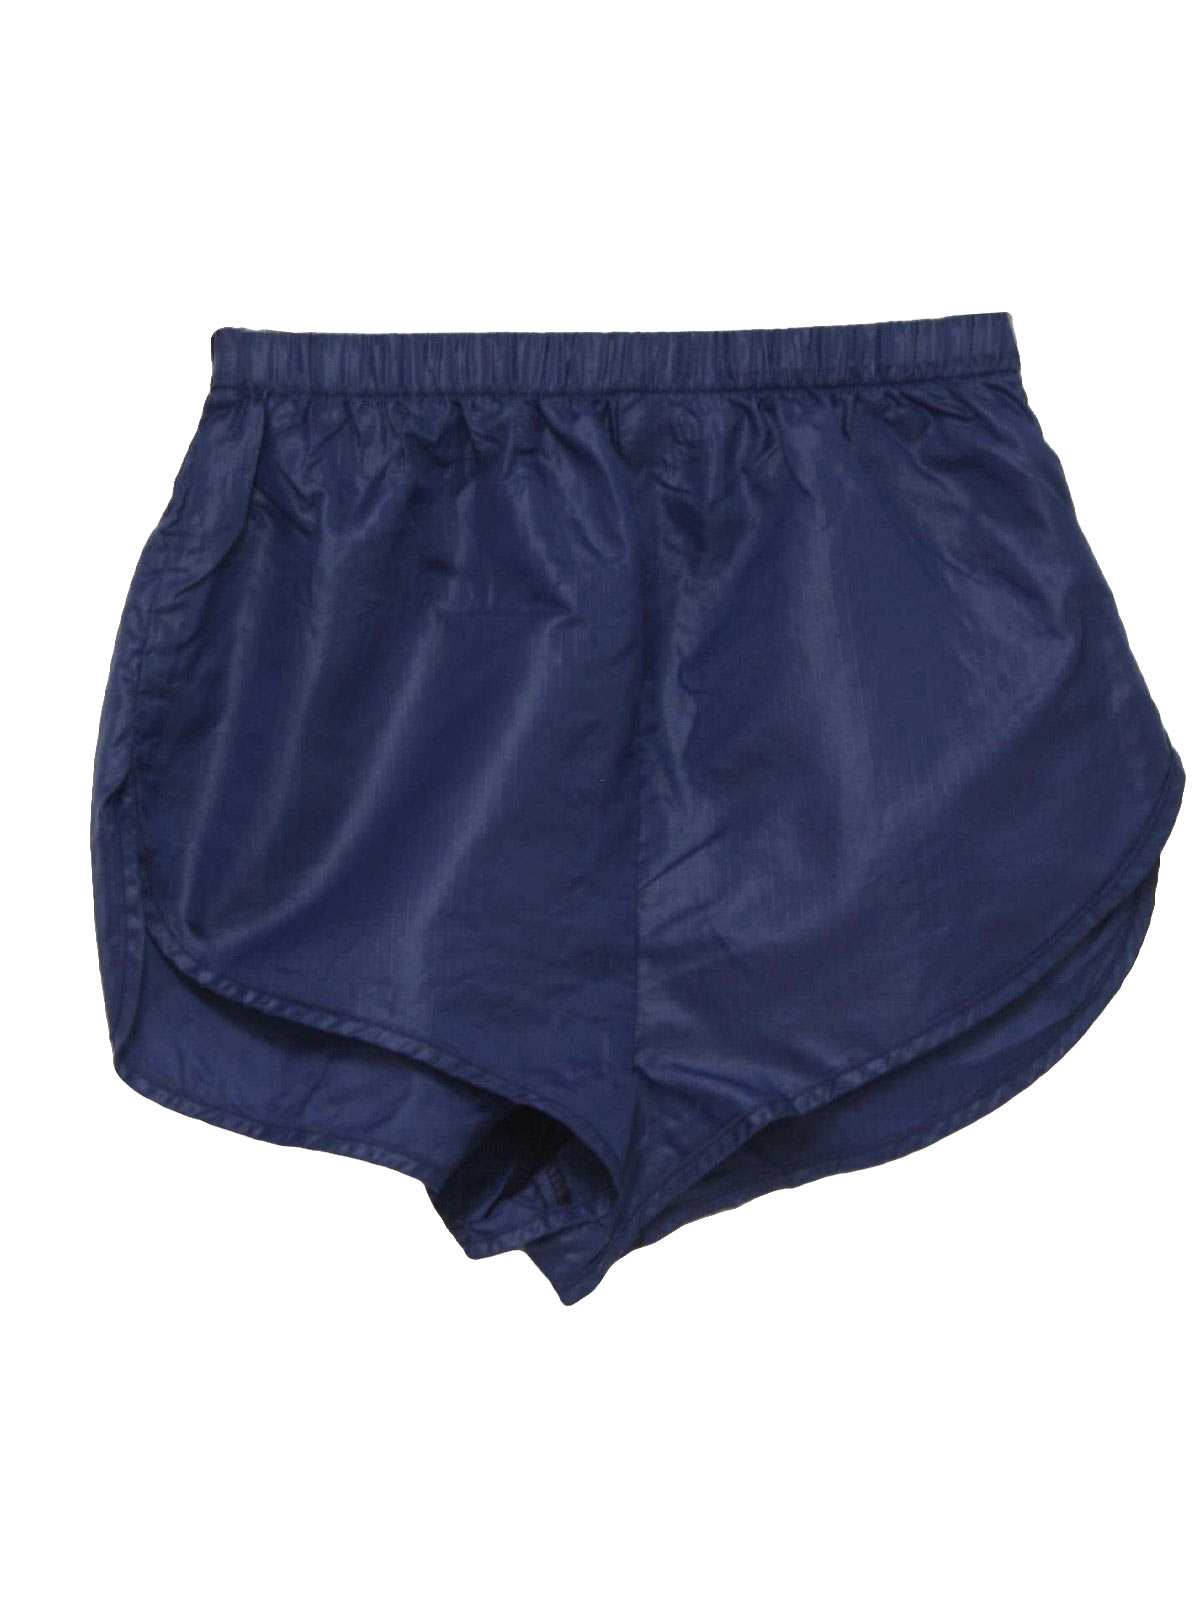 Find great deals on eBay for navy blue shorts women. Shop with confidence.